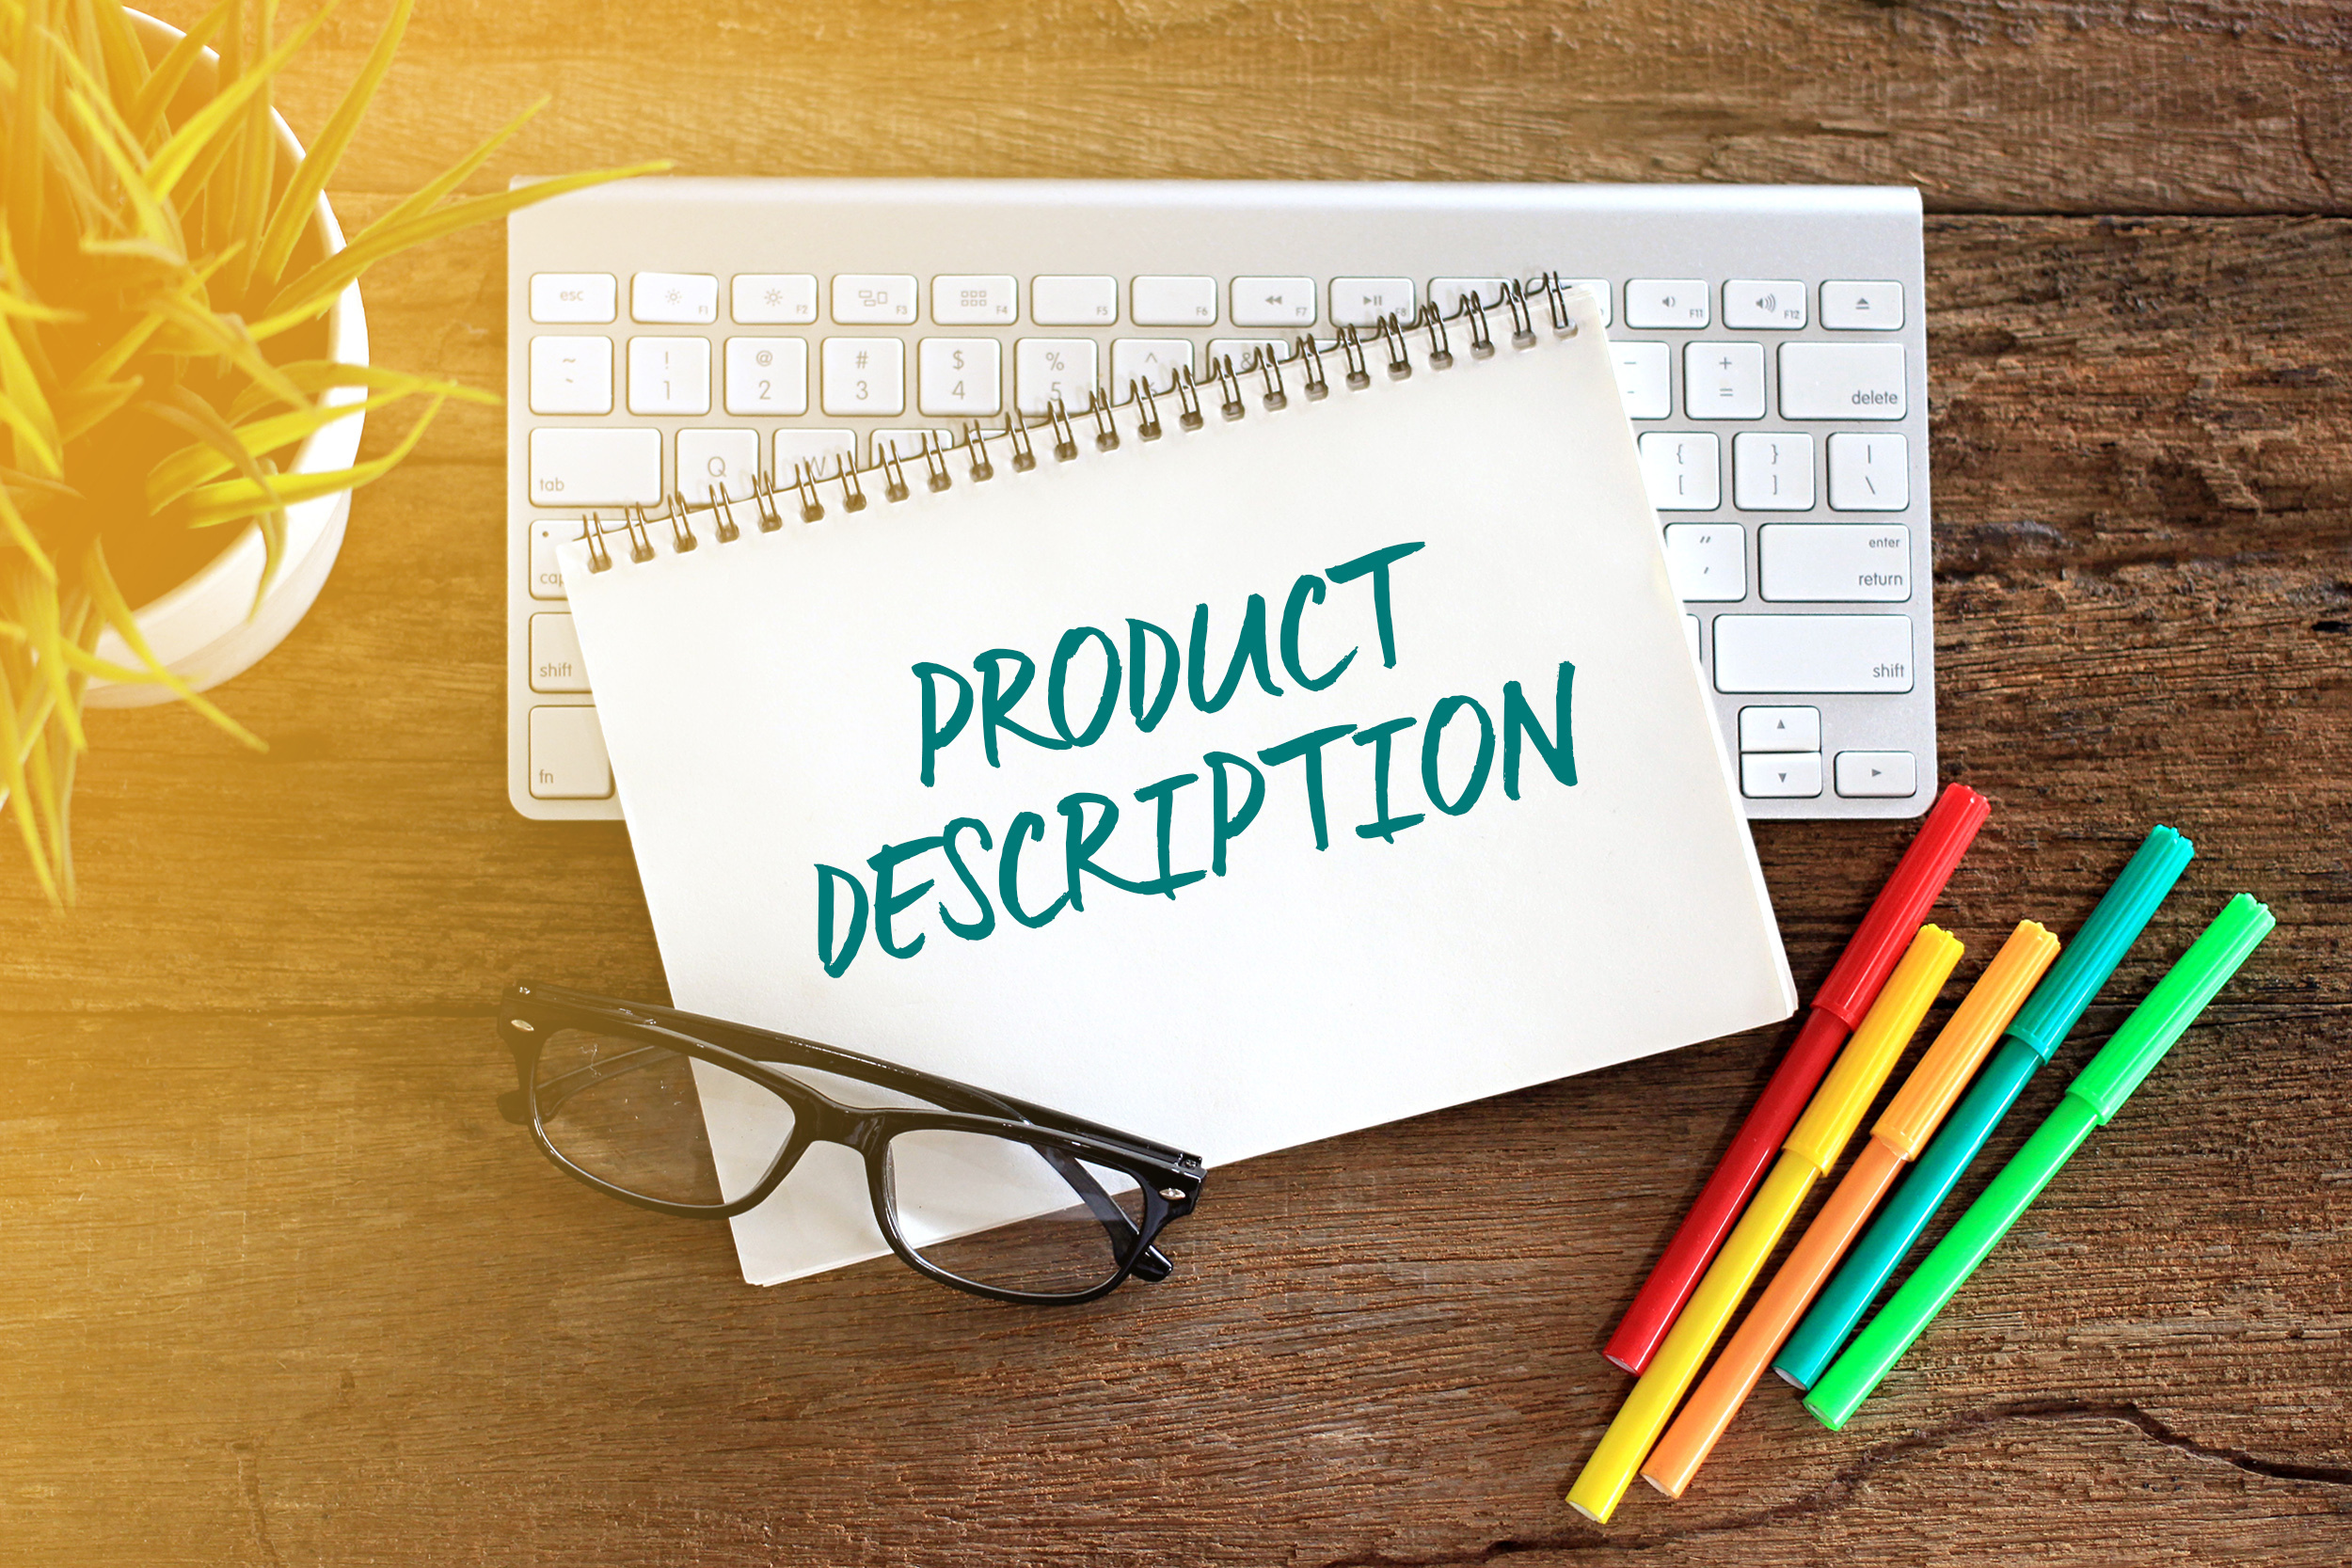 I will Write2 x 300 words Eye Catching Product Description that encourage readers to checkout